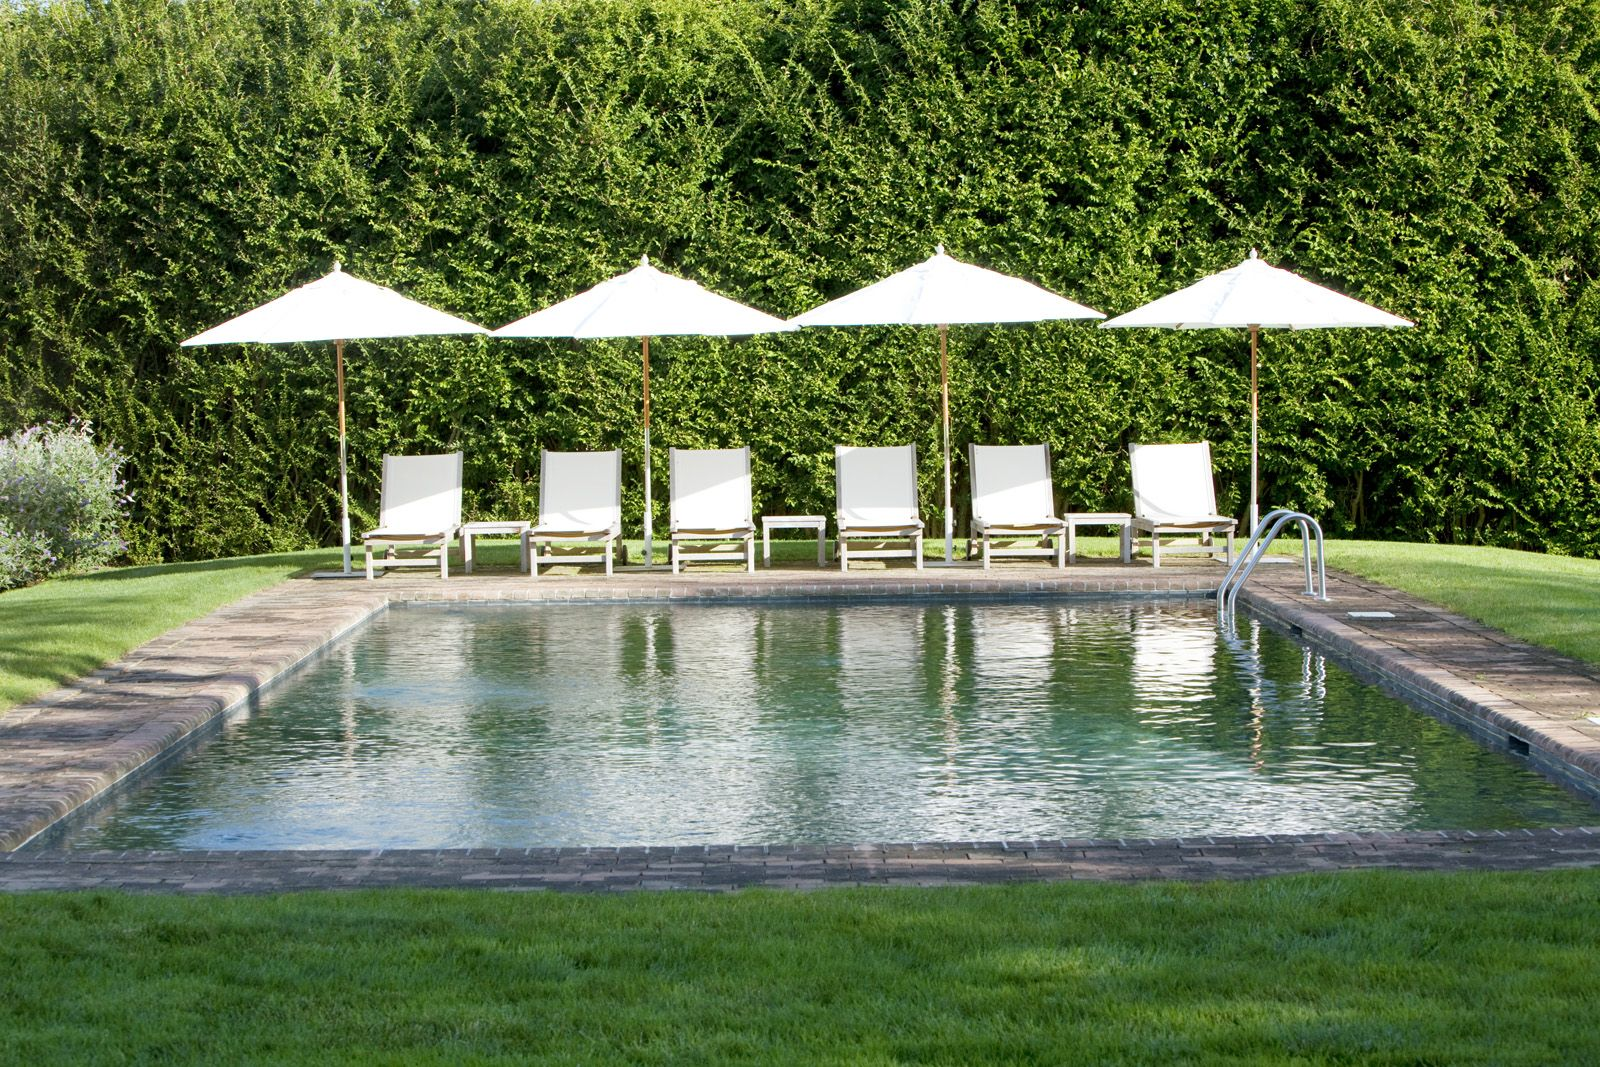 Jardines Modernos Con Piscina Family Friendly In The Country Outdoor Living Lounging